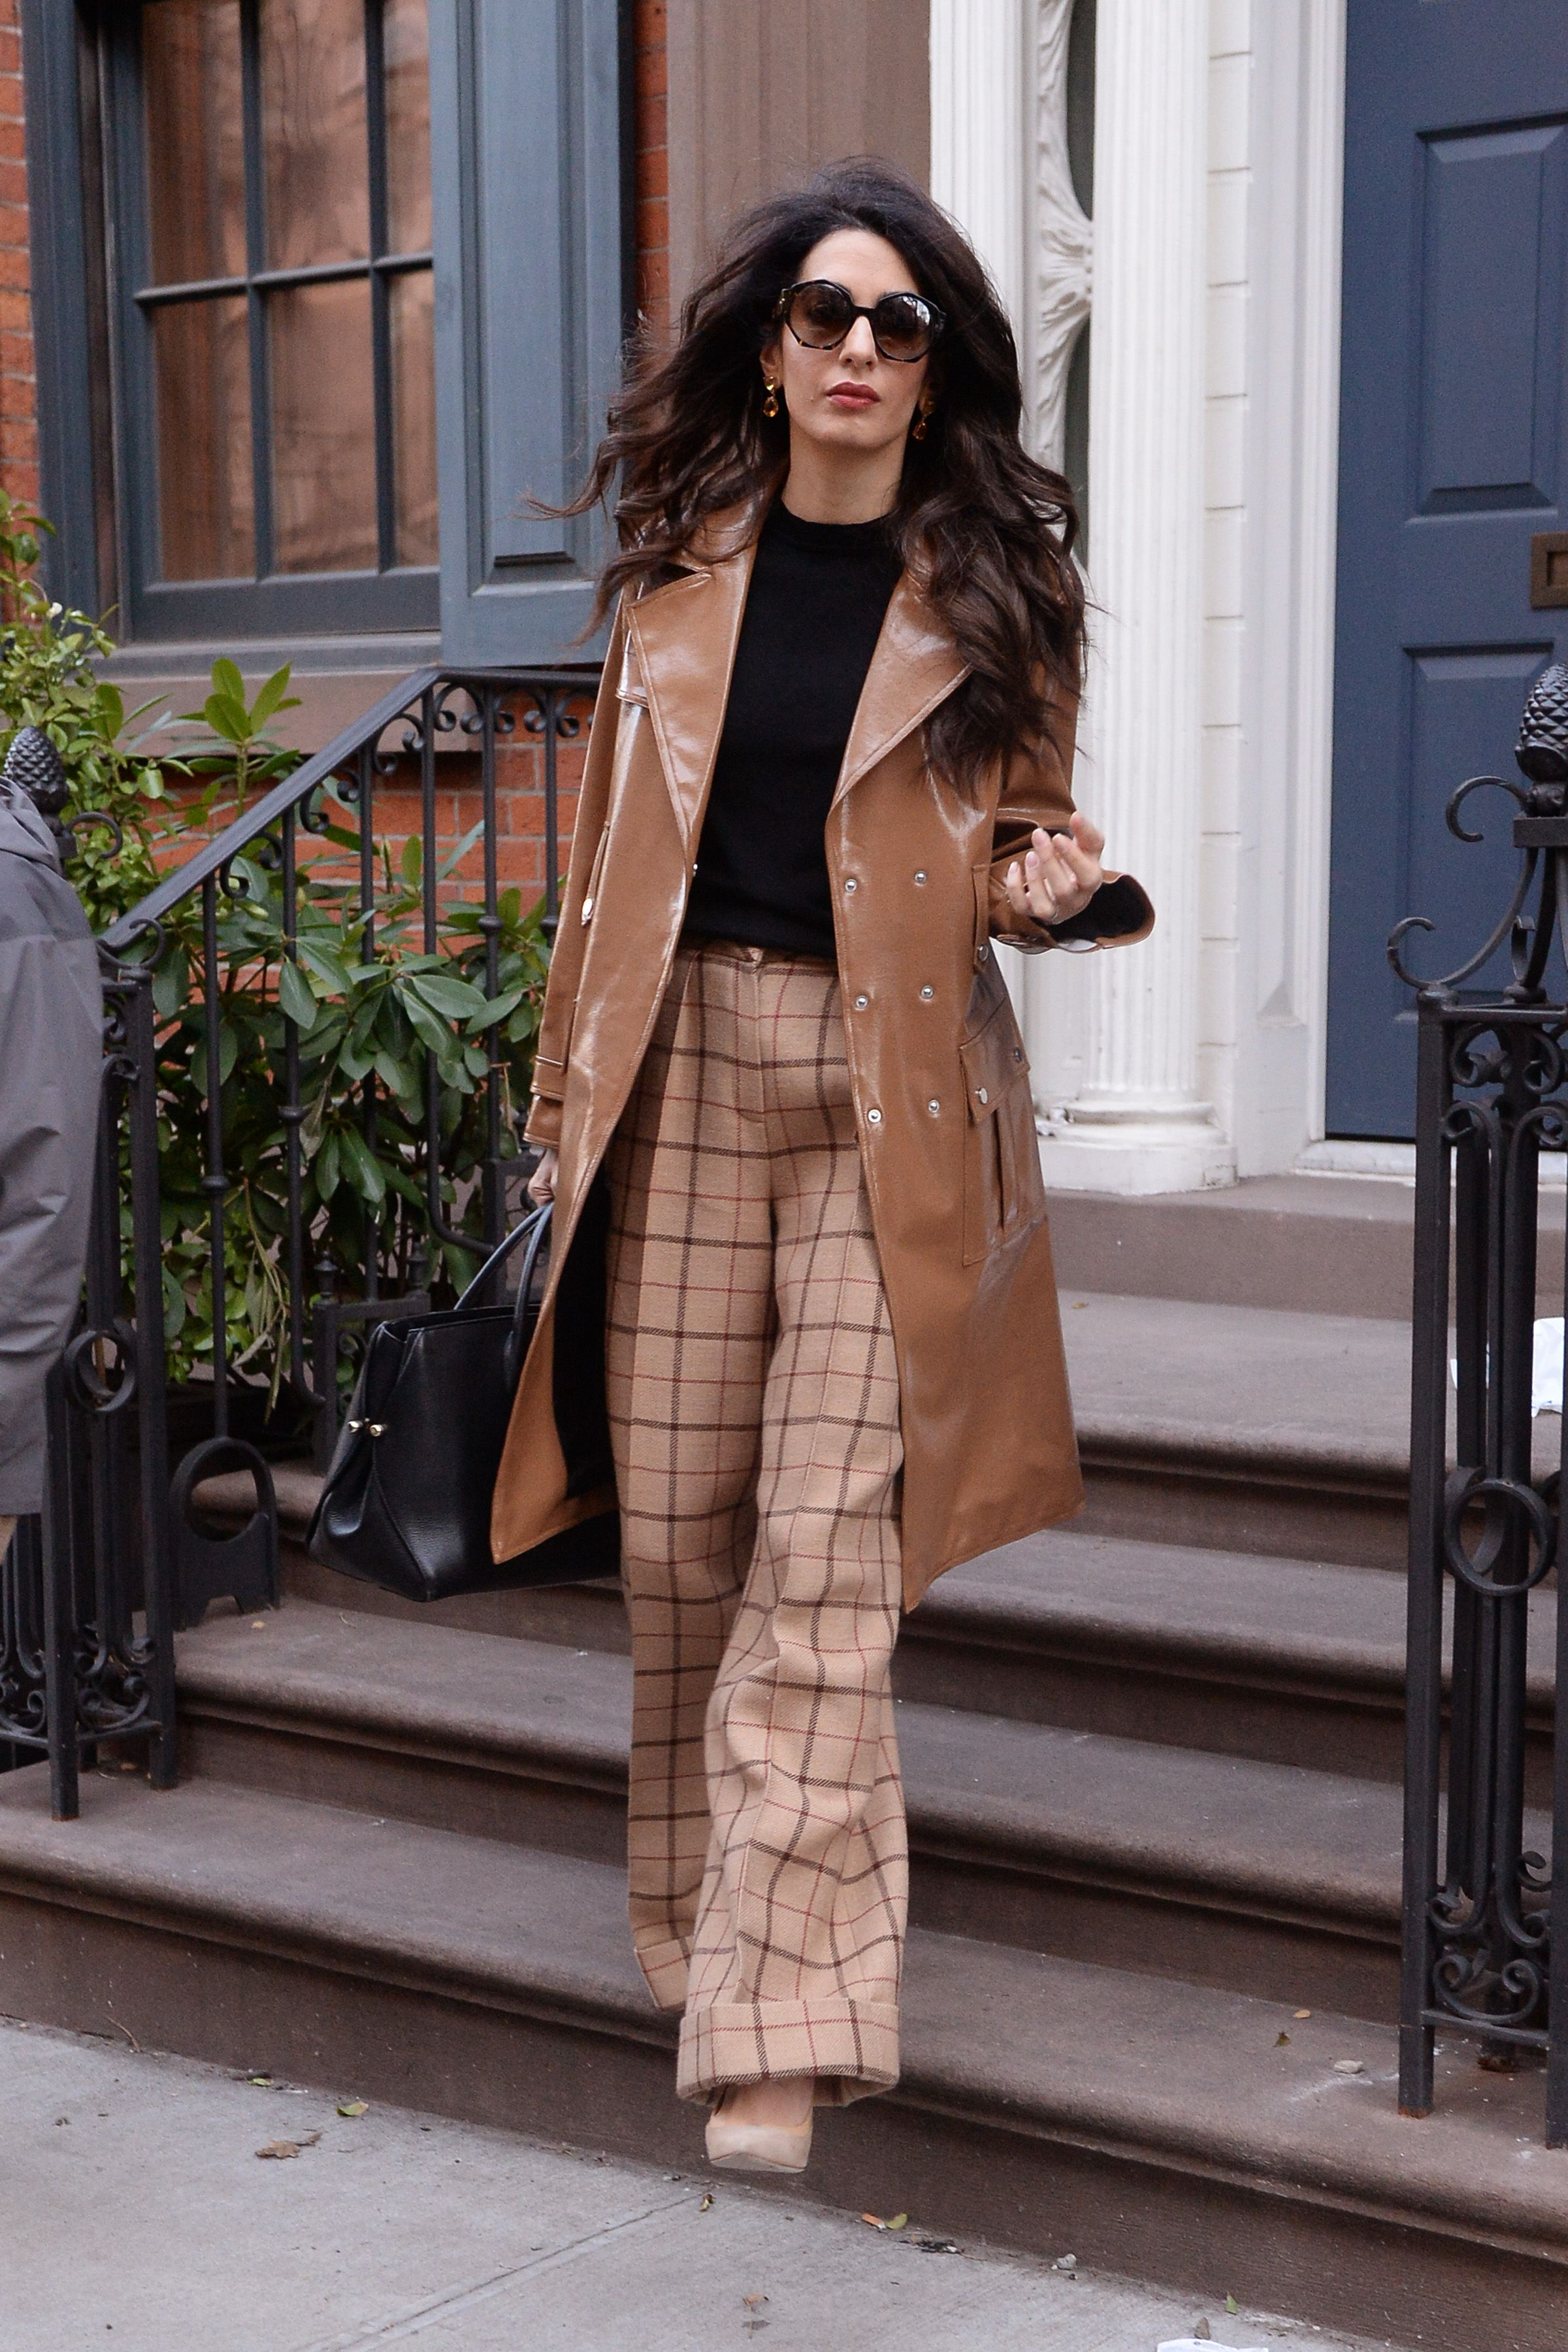 April 5, 2018 Leaving her apartment to go lecture at Columbia University.